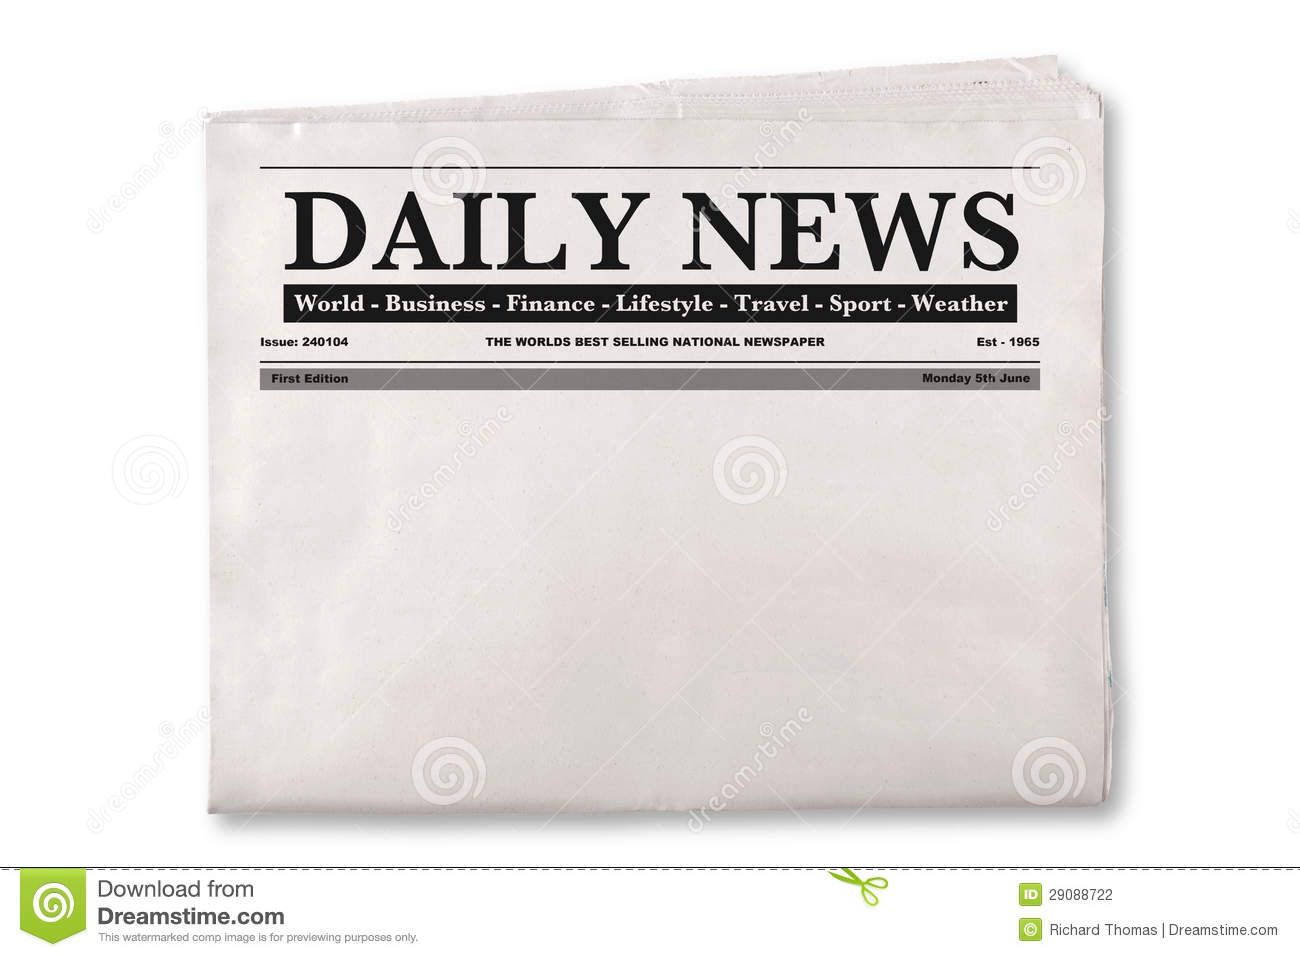 blank newspaper template best business template up of a blank daily newspaper empty space to add your own news oltobxwn